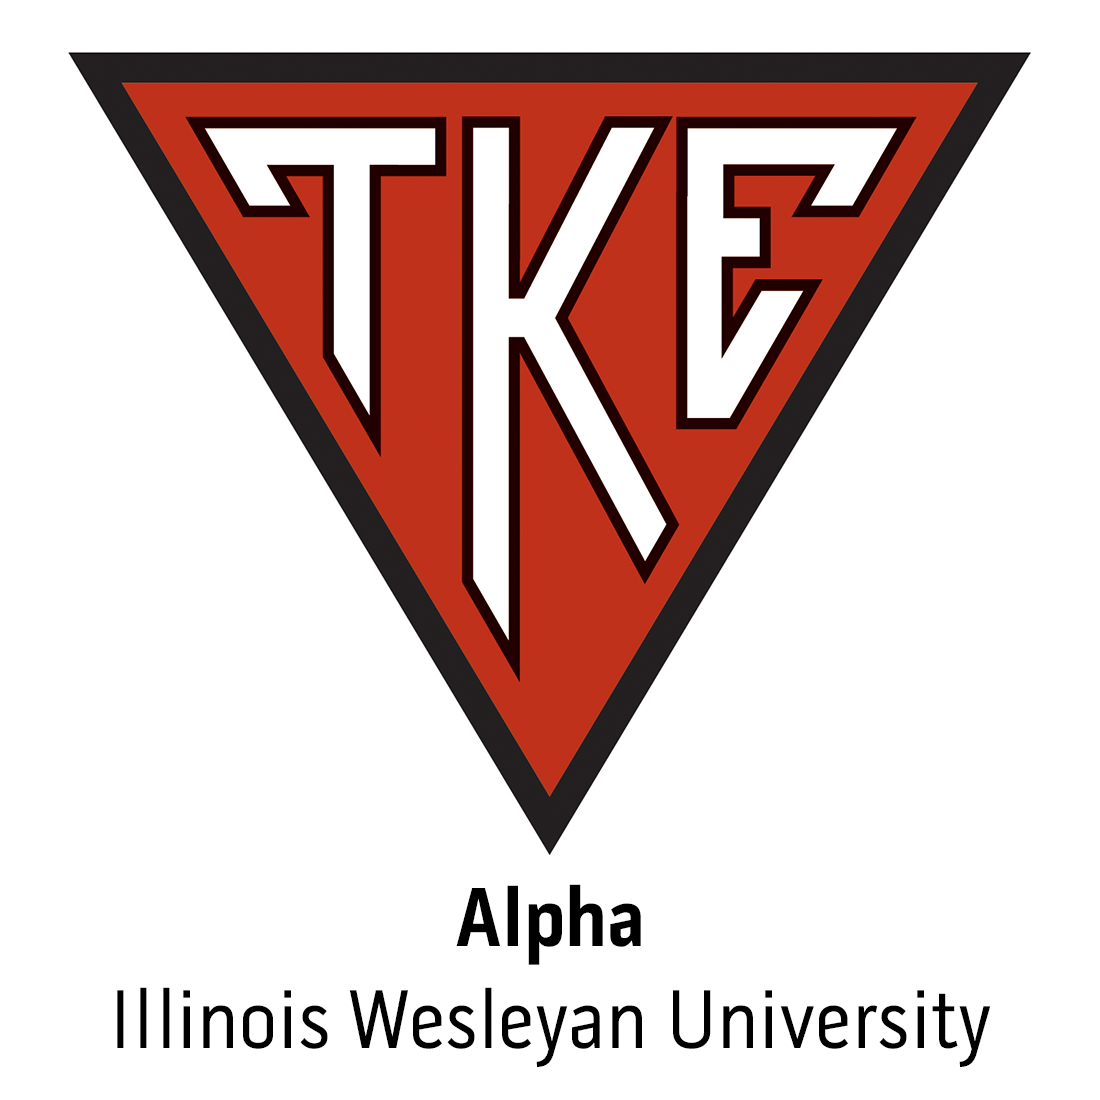 Alpha Chapter at Illinois Wesleyan University